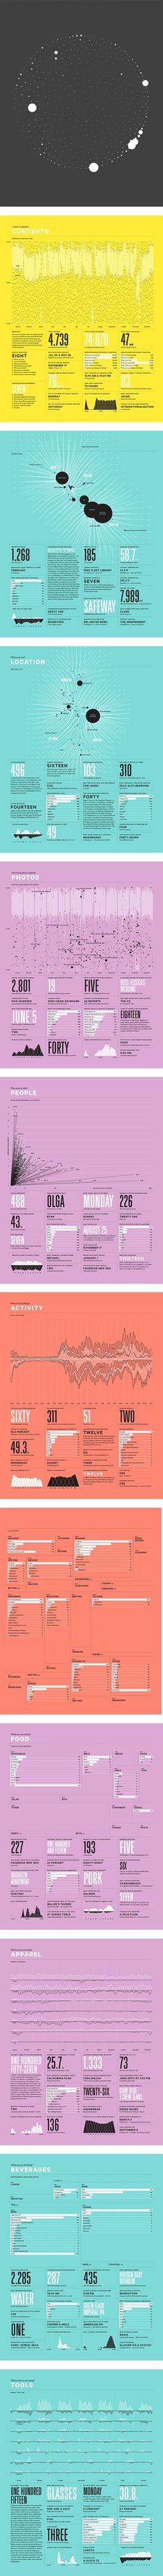 Nicholas Felton #infographic #data